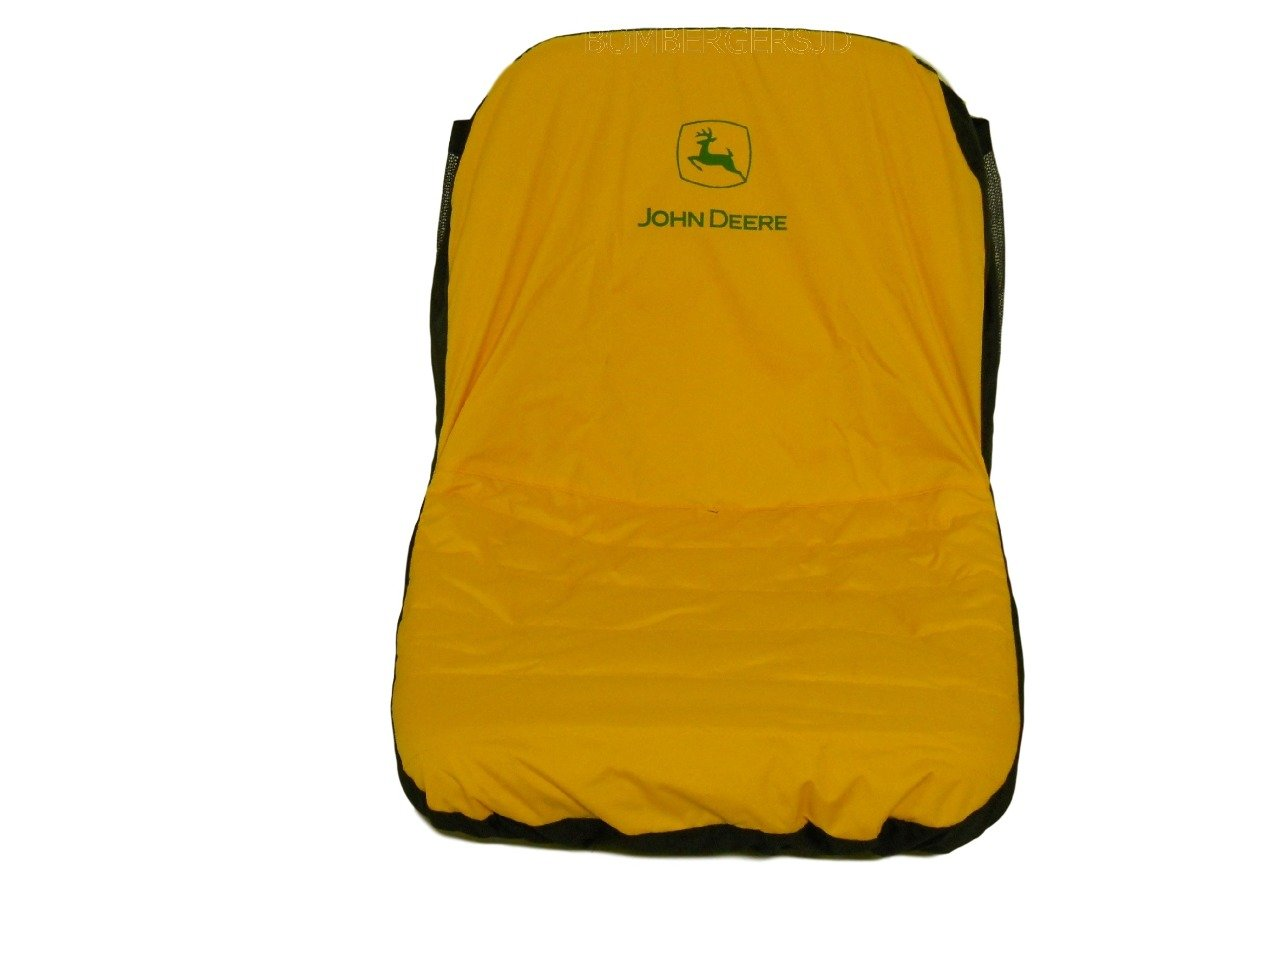 "John Deere Original Gator & Riding Mower 18"" Seat Cover (Large) #LP92334"